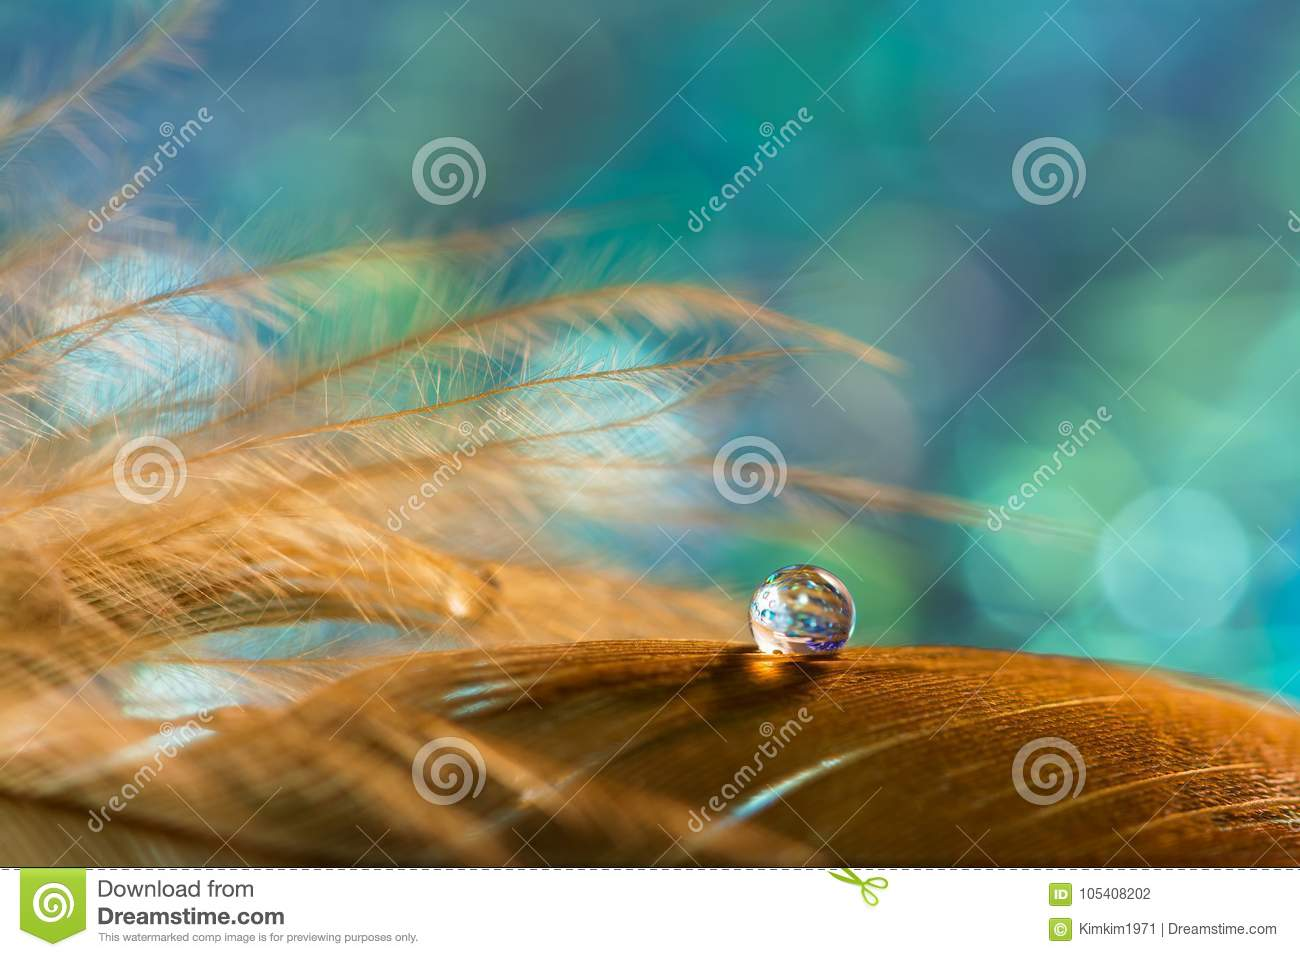 A drop on the golden feather of the bird on an emerald background. Beautiful stylish macro.